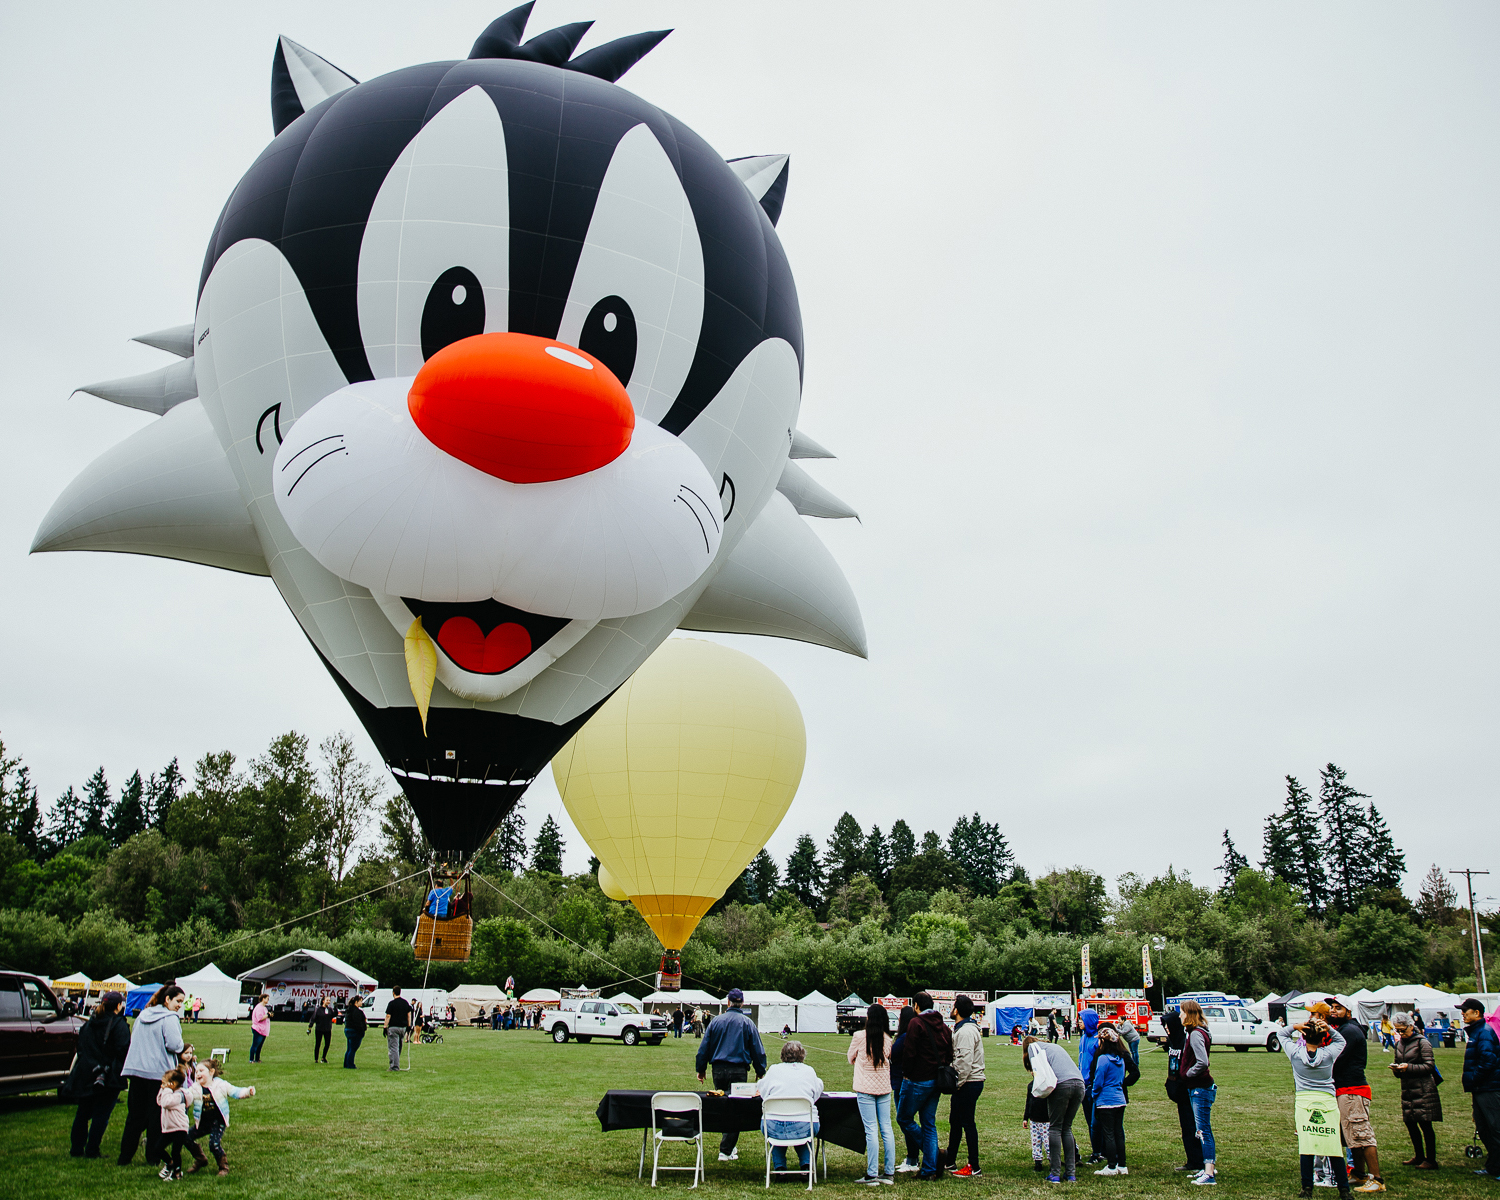 a sylvester the cat shaped hot air balloon sits against a grey sky